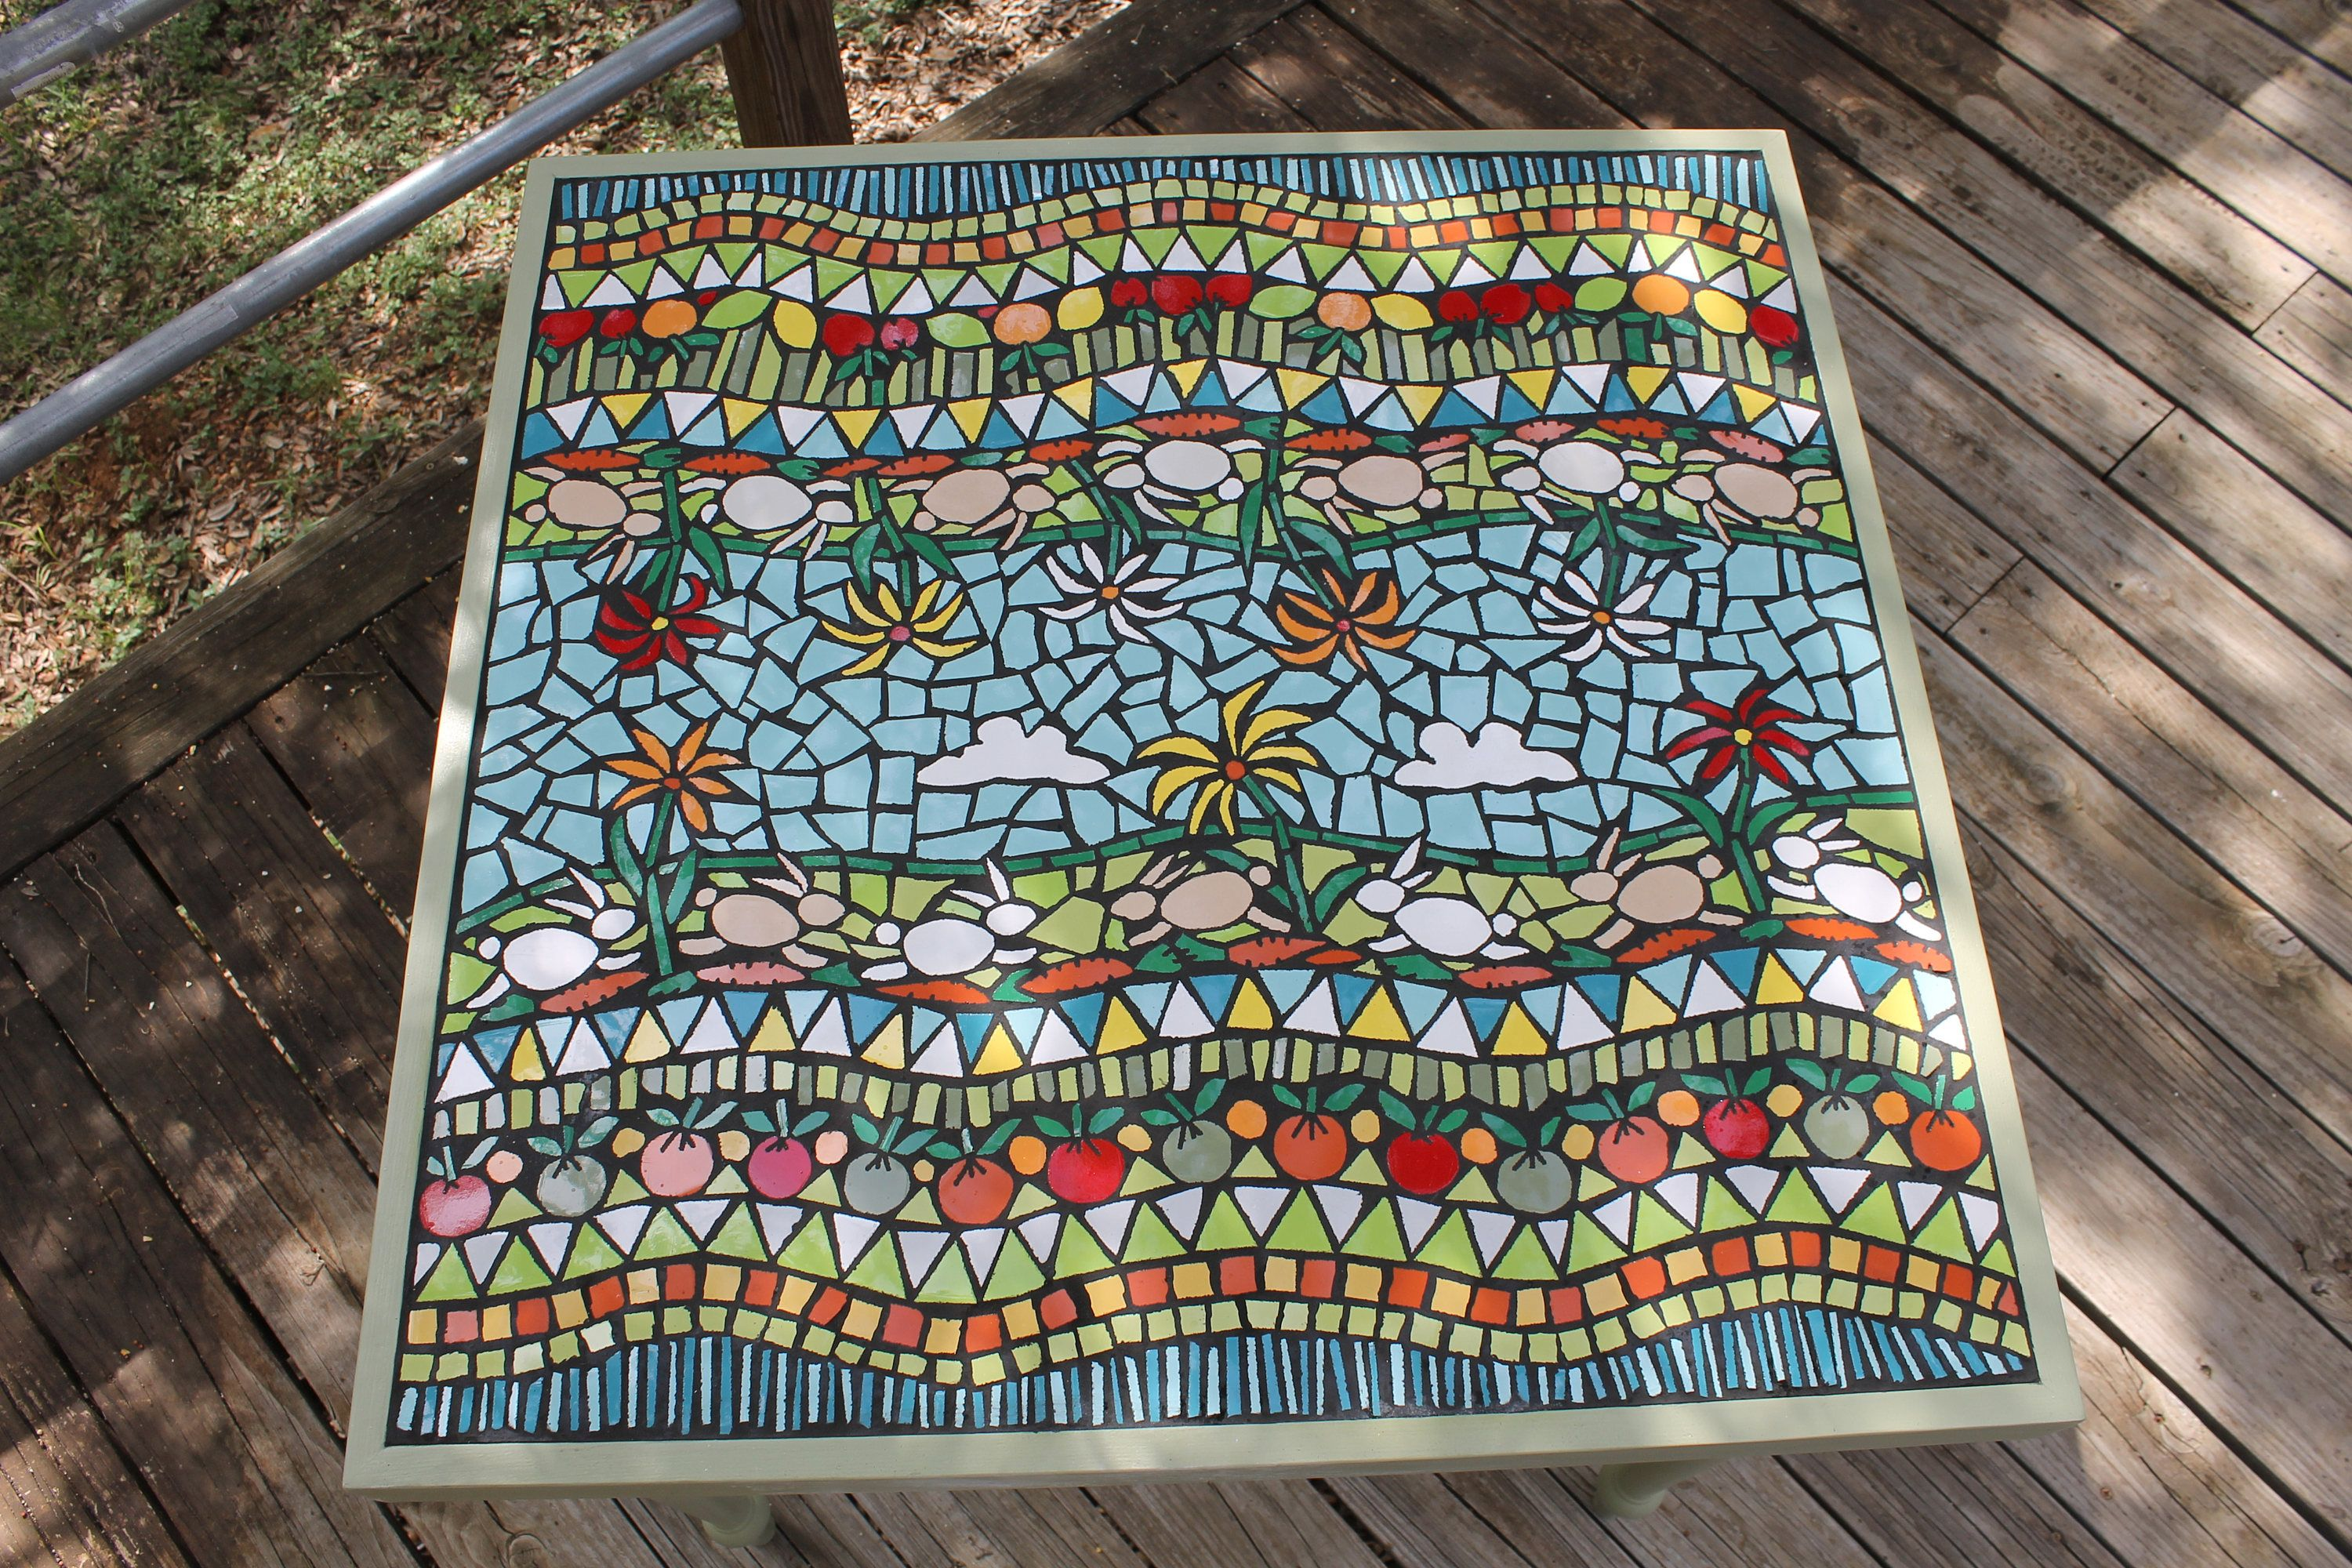 Mosaic Table Mosaic Art Mosaic Garden Table Outdoor Mosaic Table Mosaic Garden Art Floral Mosaic Bunnies Mosai Mosaic Garden Art Mosaic Art Floral Mosaic